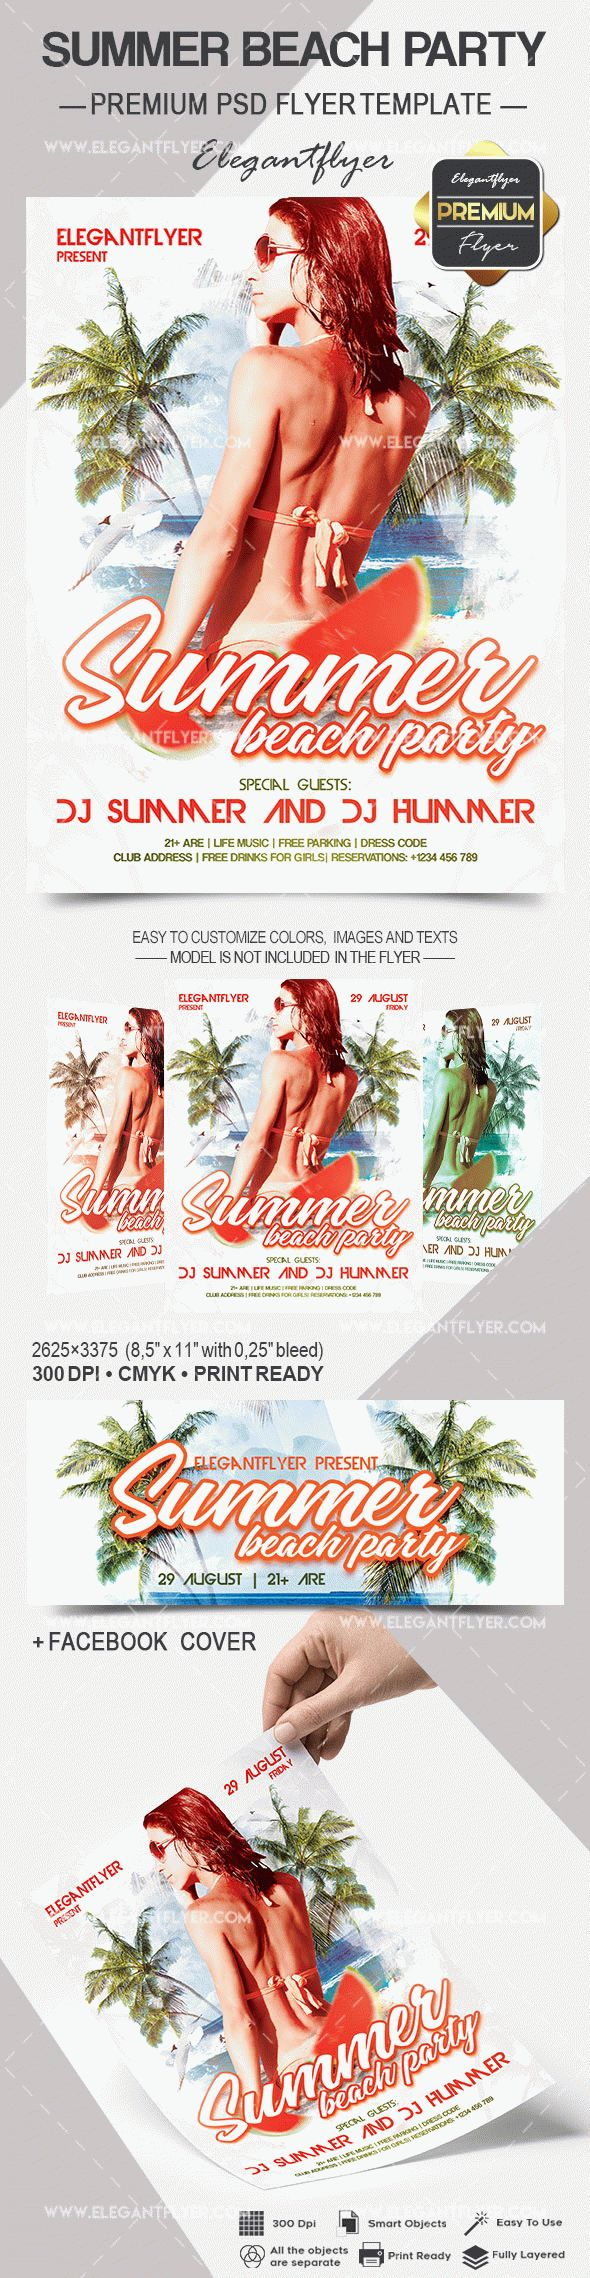 Summer Beach Party PSD Flyer